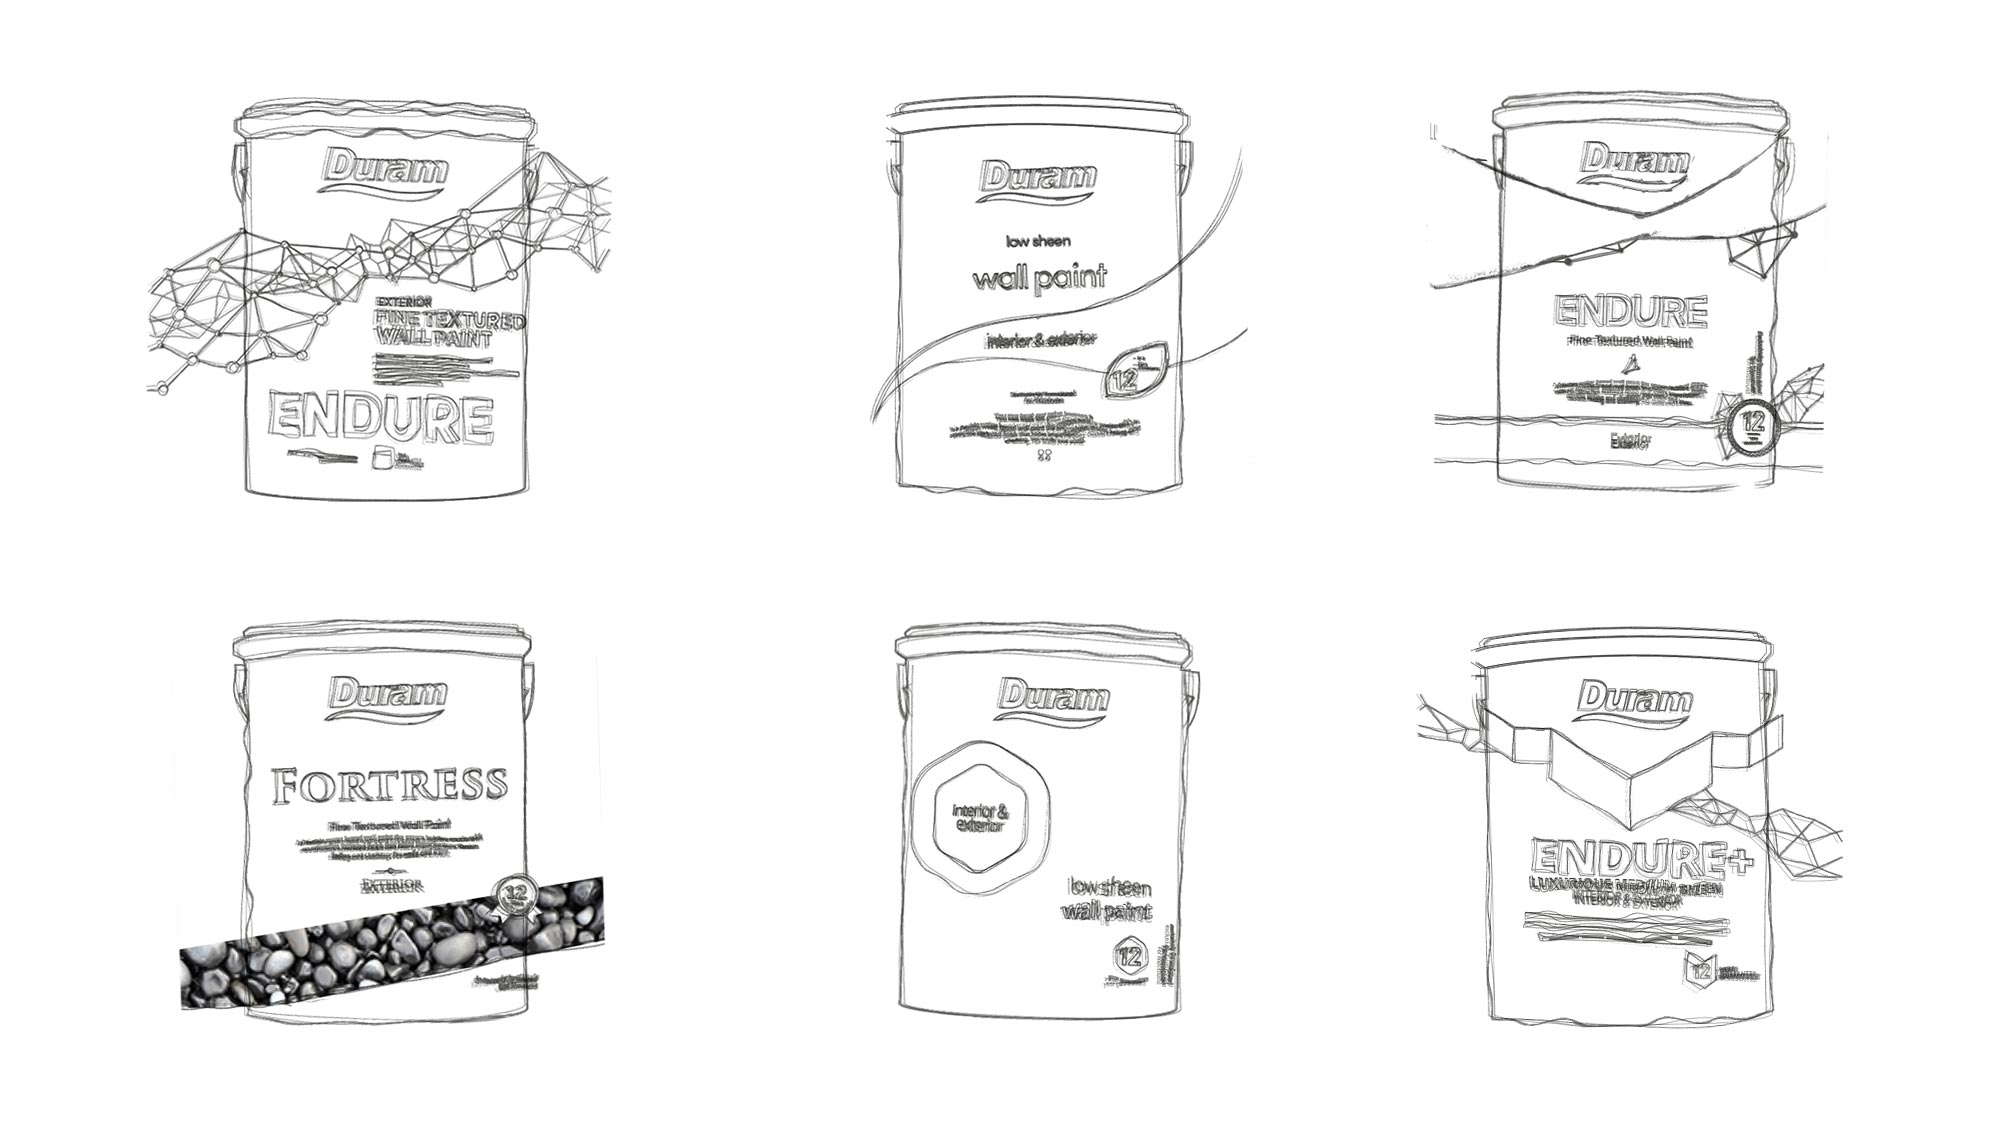 Endure Packaging Concept Drawings, Pack Design